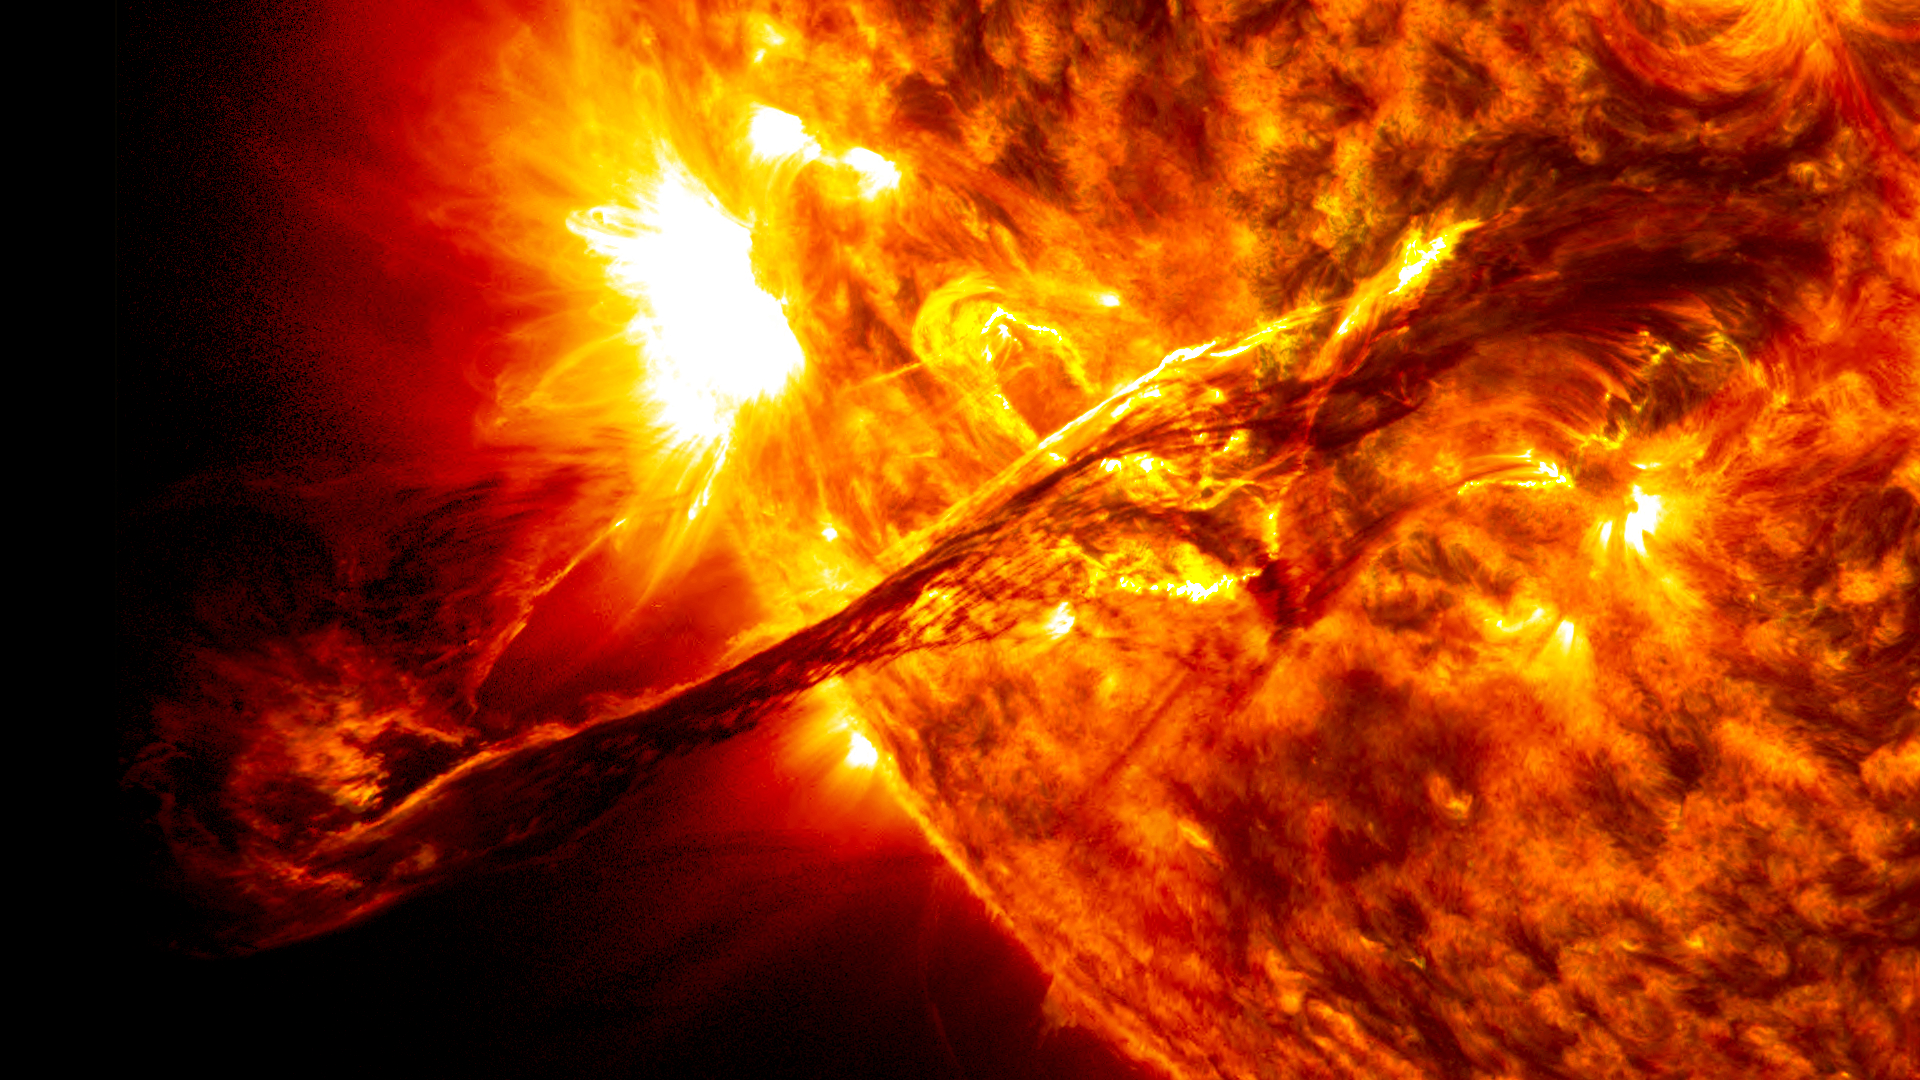 A solar prominence erupts in August 2012, as captured by SDO